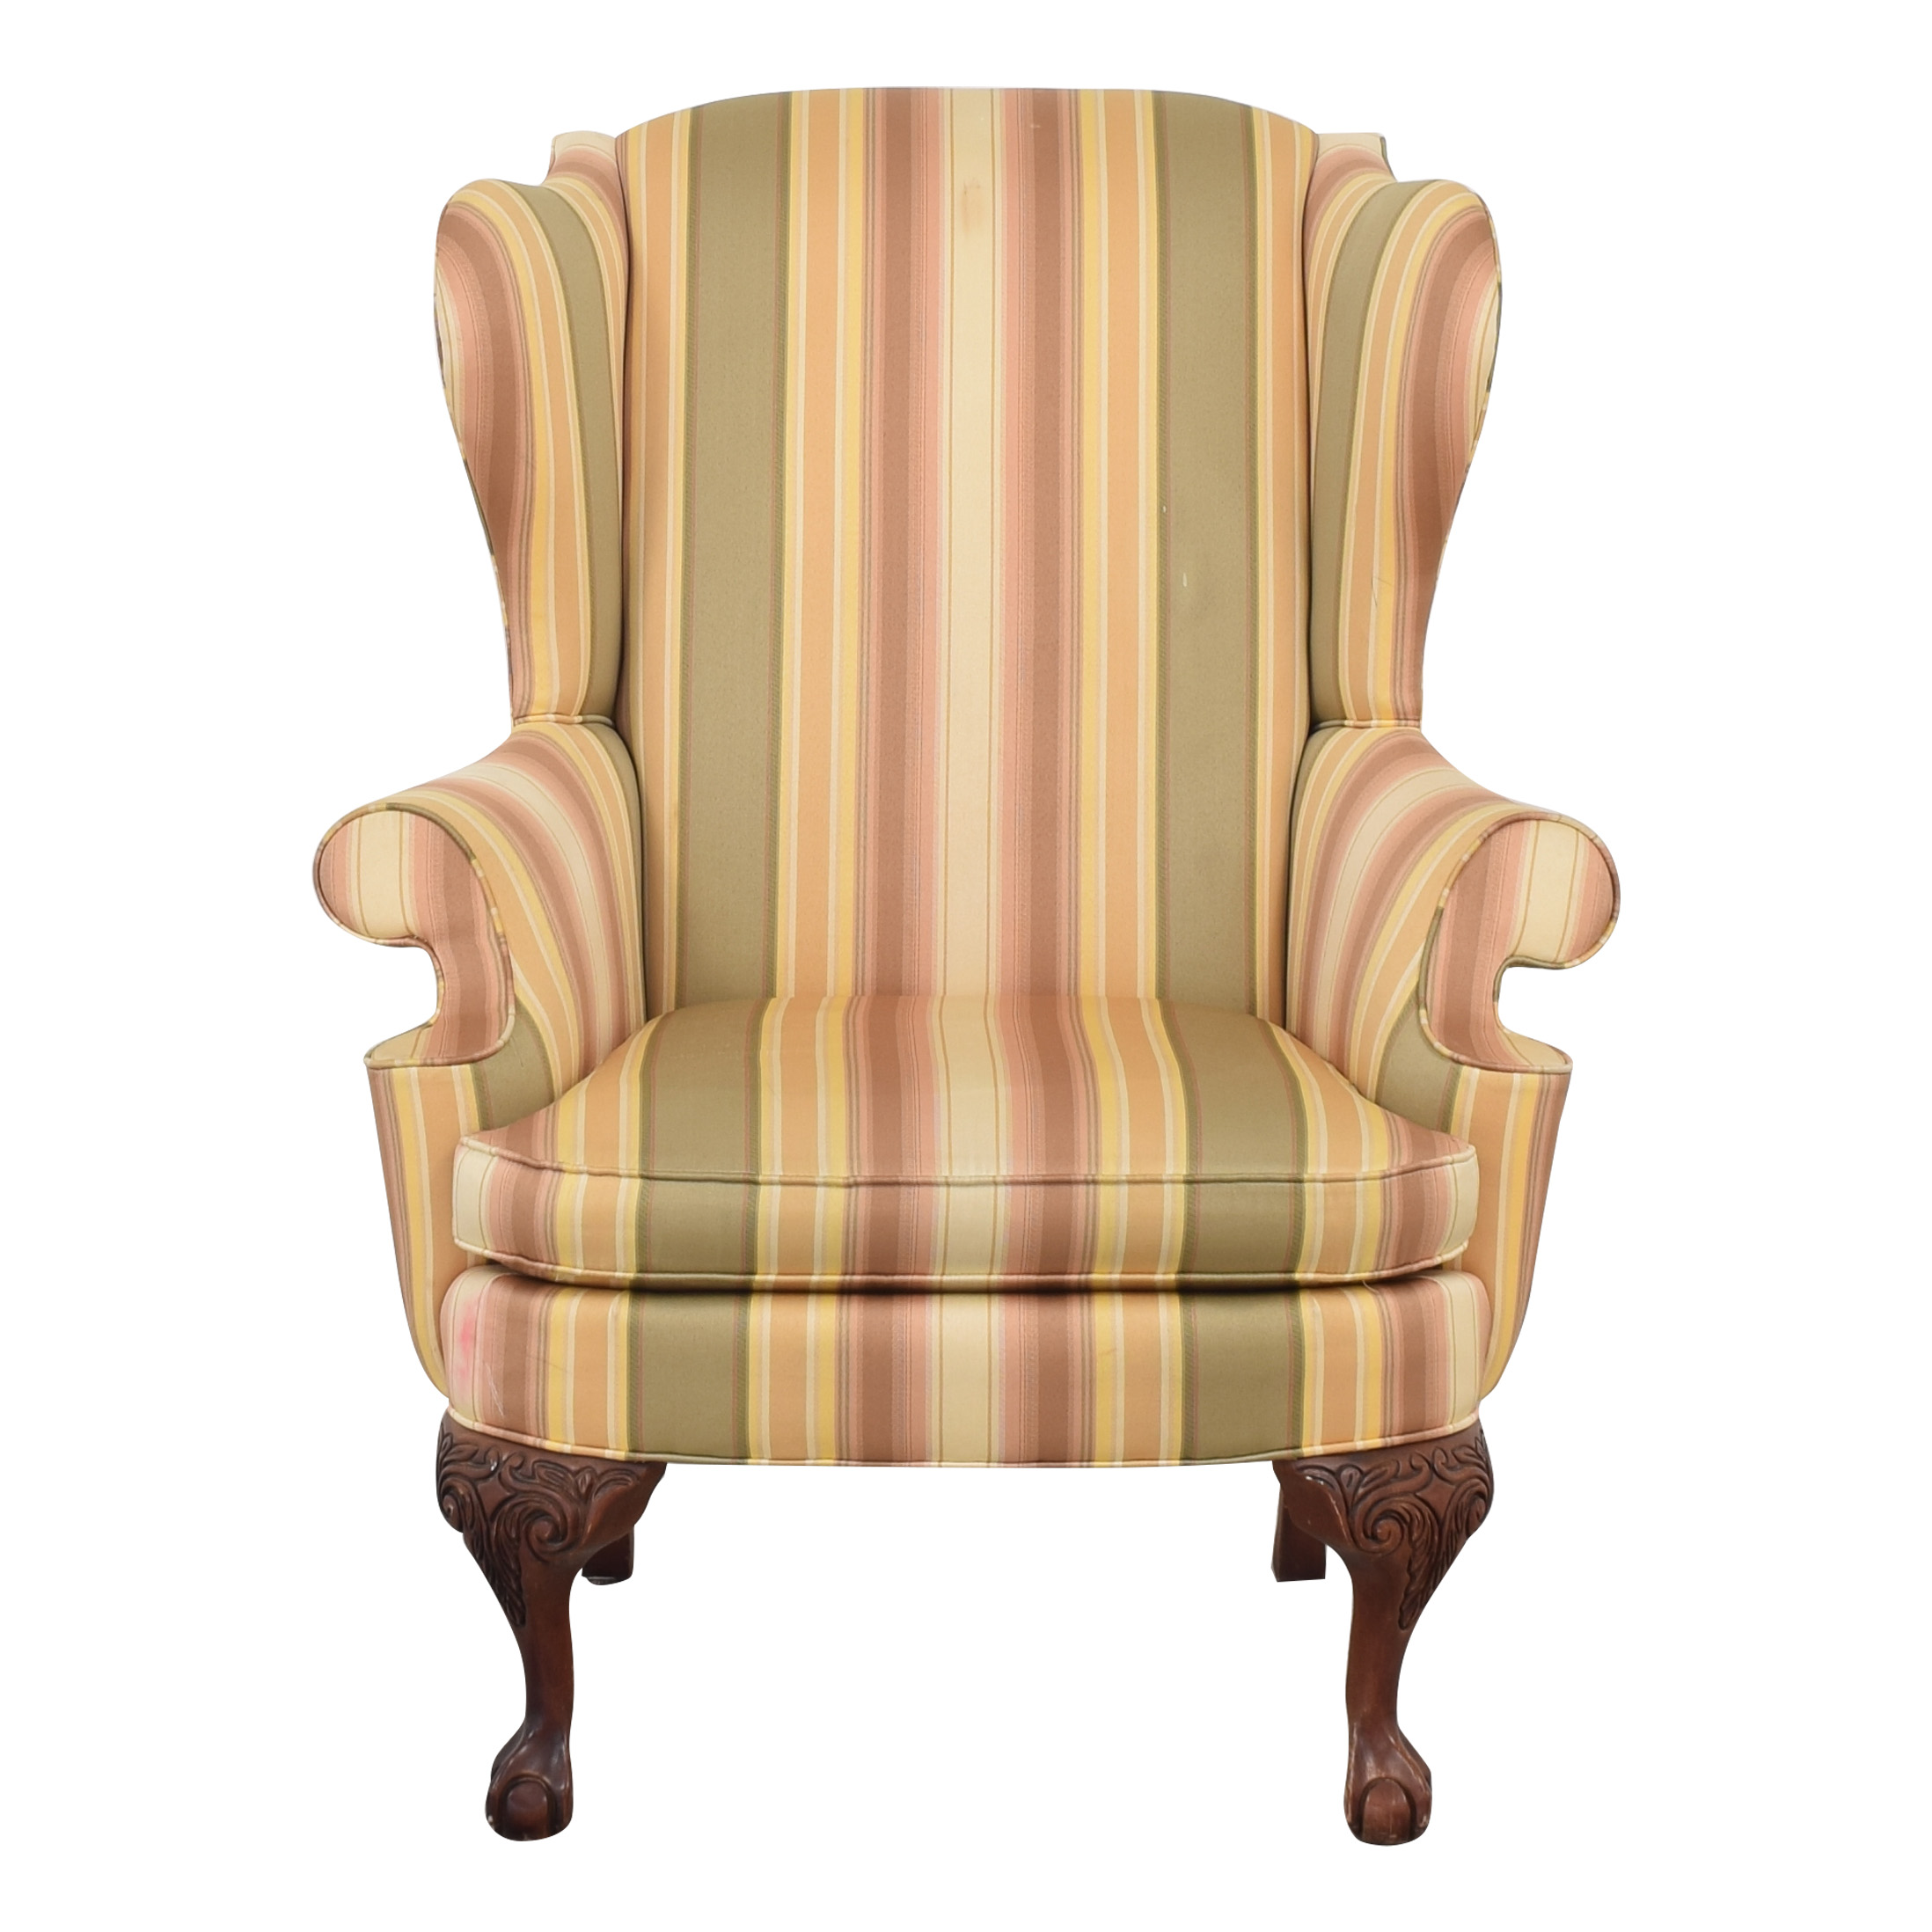 Thomasville Thomasville Wingback Chair multicolored